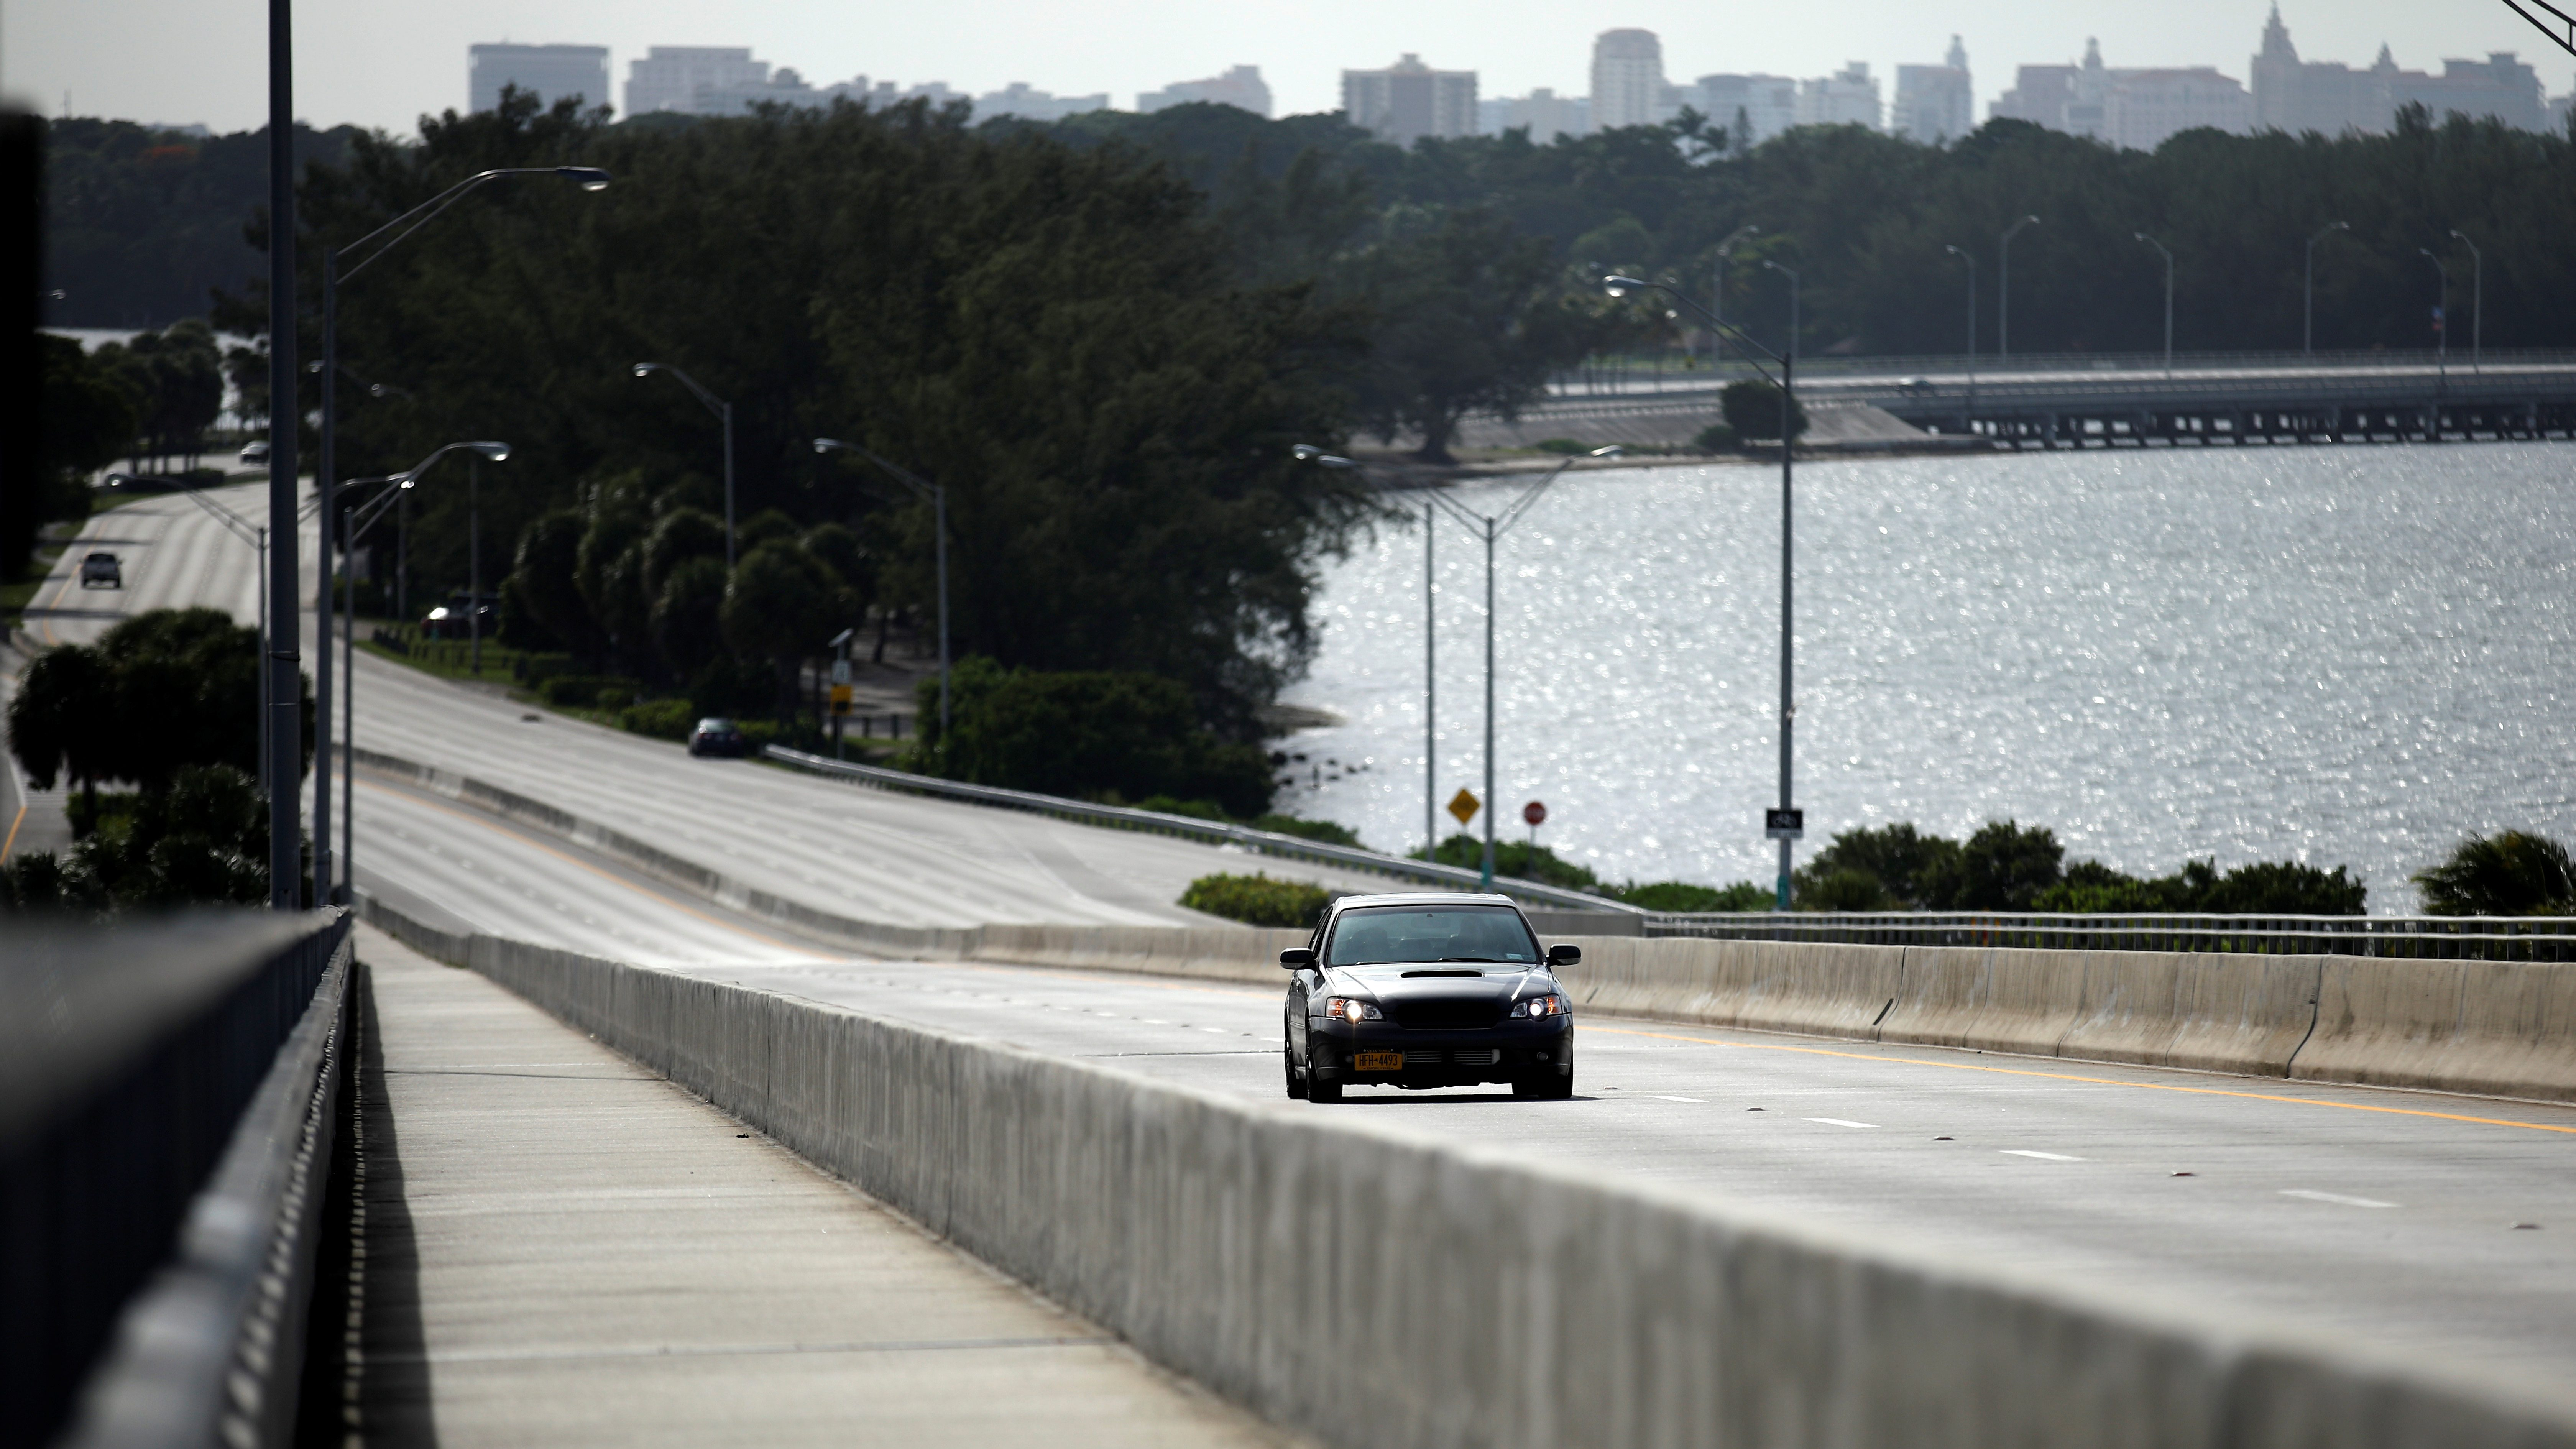 A car drives on an empty highway in downtown Miami before the arrival of Hurricane Irma to south Florida, in Miami